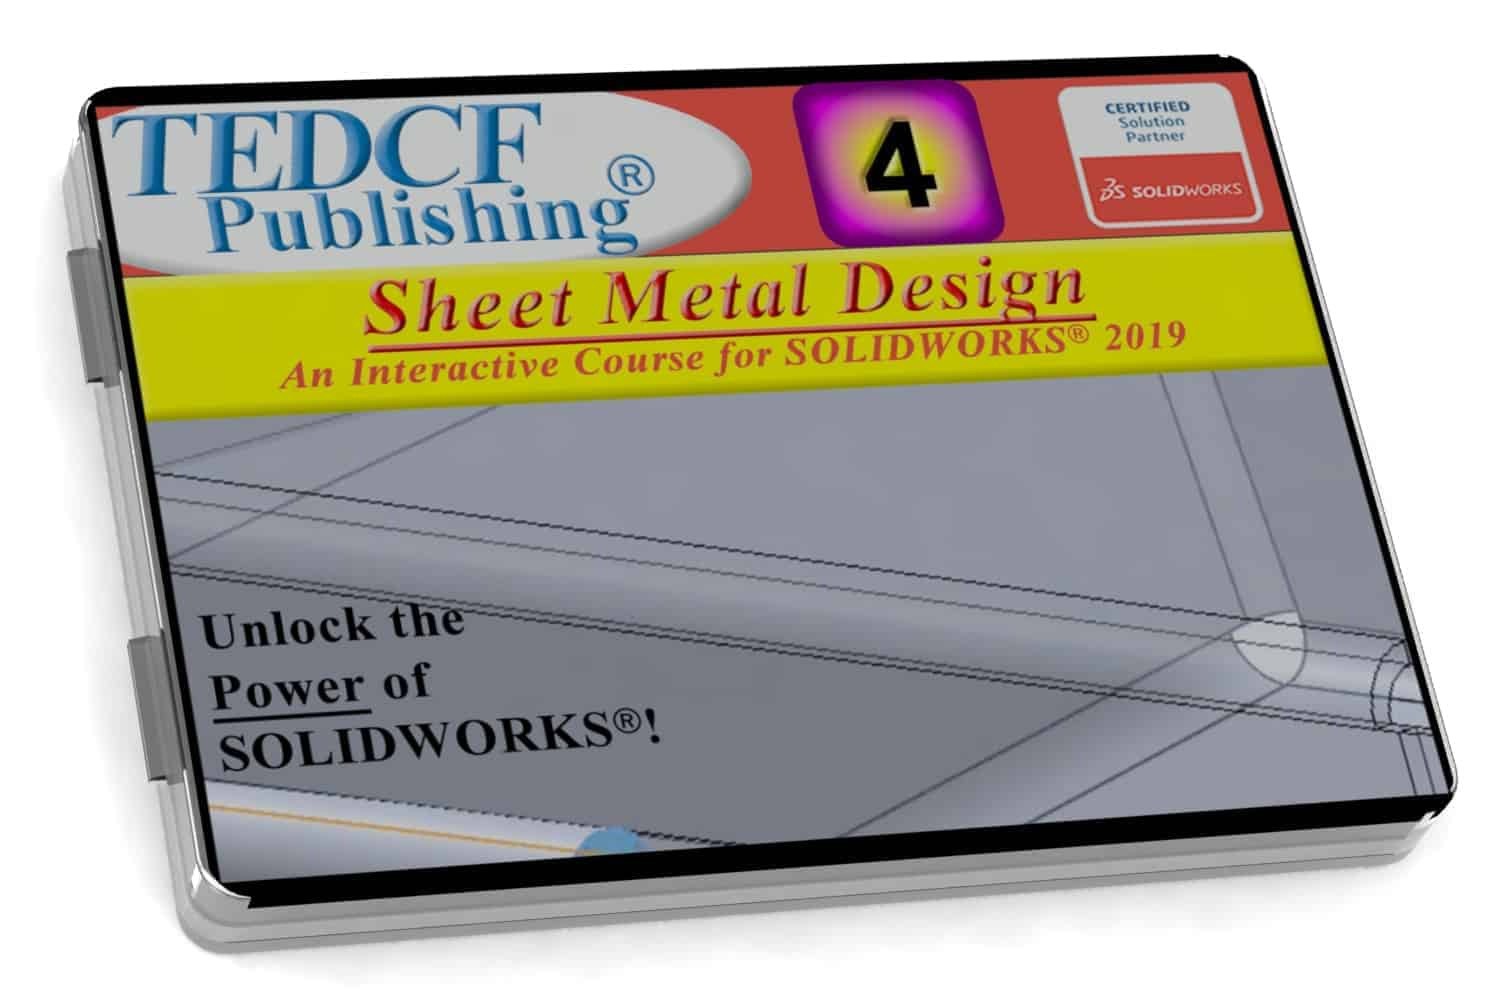 SolidWorks 2019 Sheet Metal Training Course